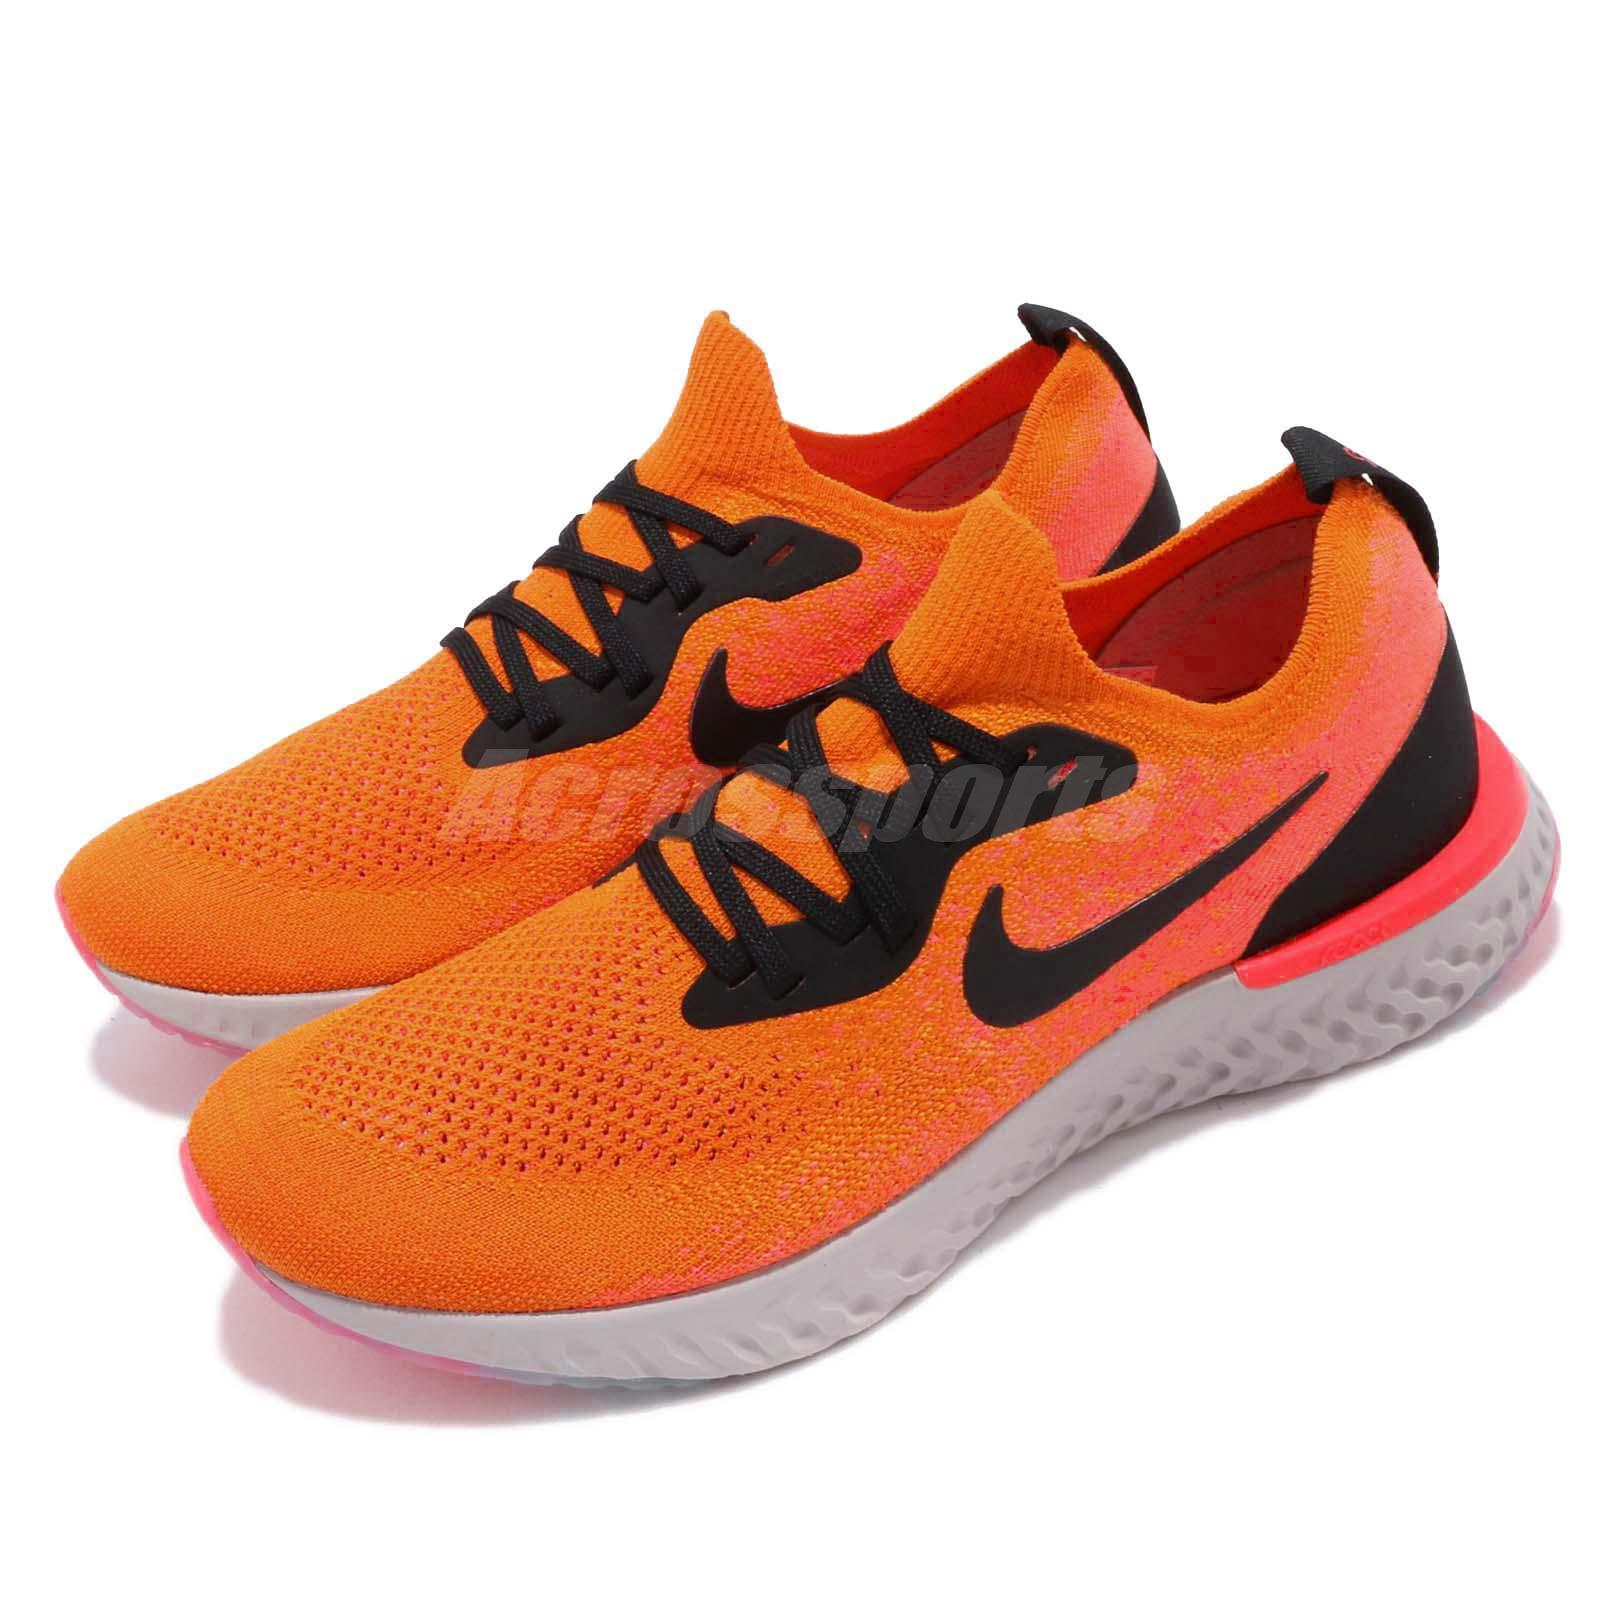 6cc51d9f1e4 Details about Nike Epic React Flyknit Copper Flash Black Men Running Shoes  Sneakers AQ0067-800